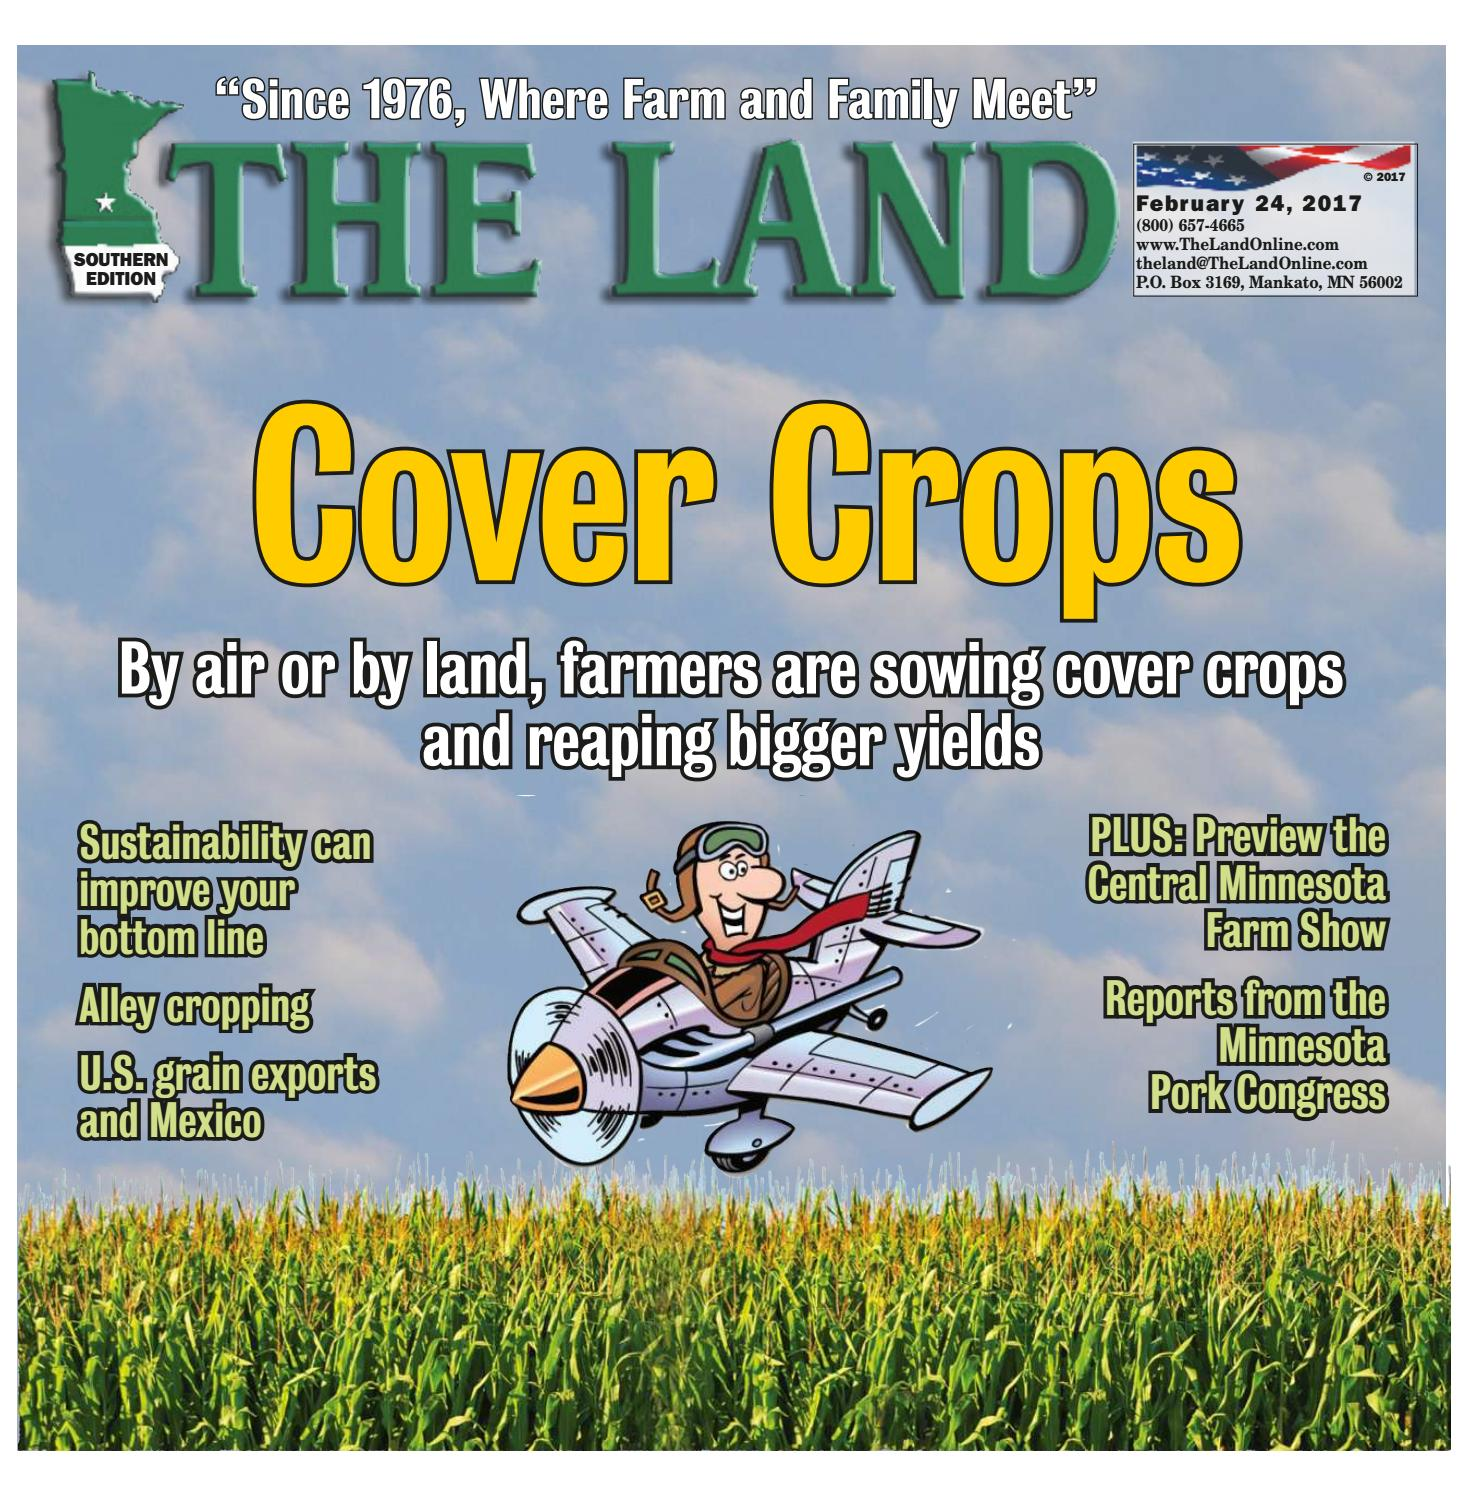 THE LAND Feb 24 2017 Southern Edition by The Land issuu